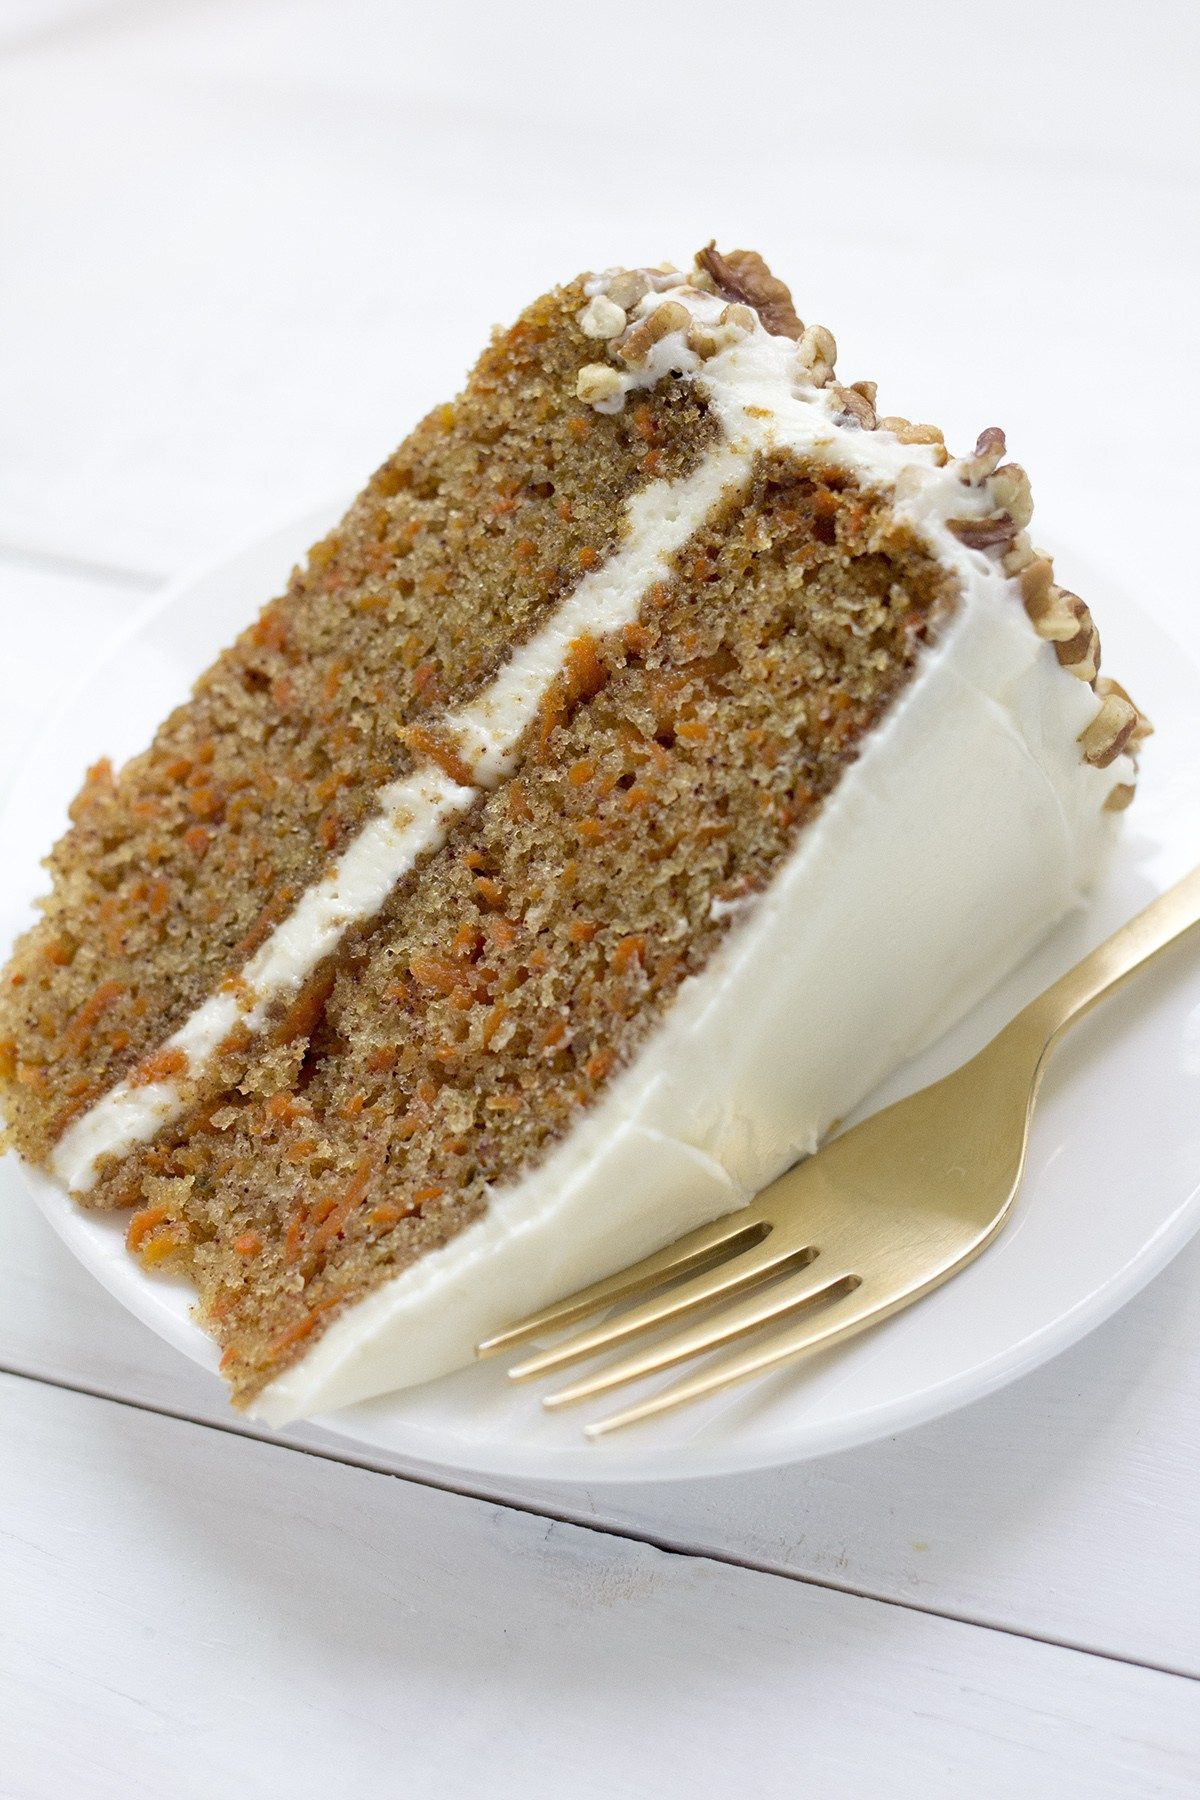 The Very Best Carrot Cake Use Almond Extract In The Icing Instead